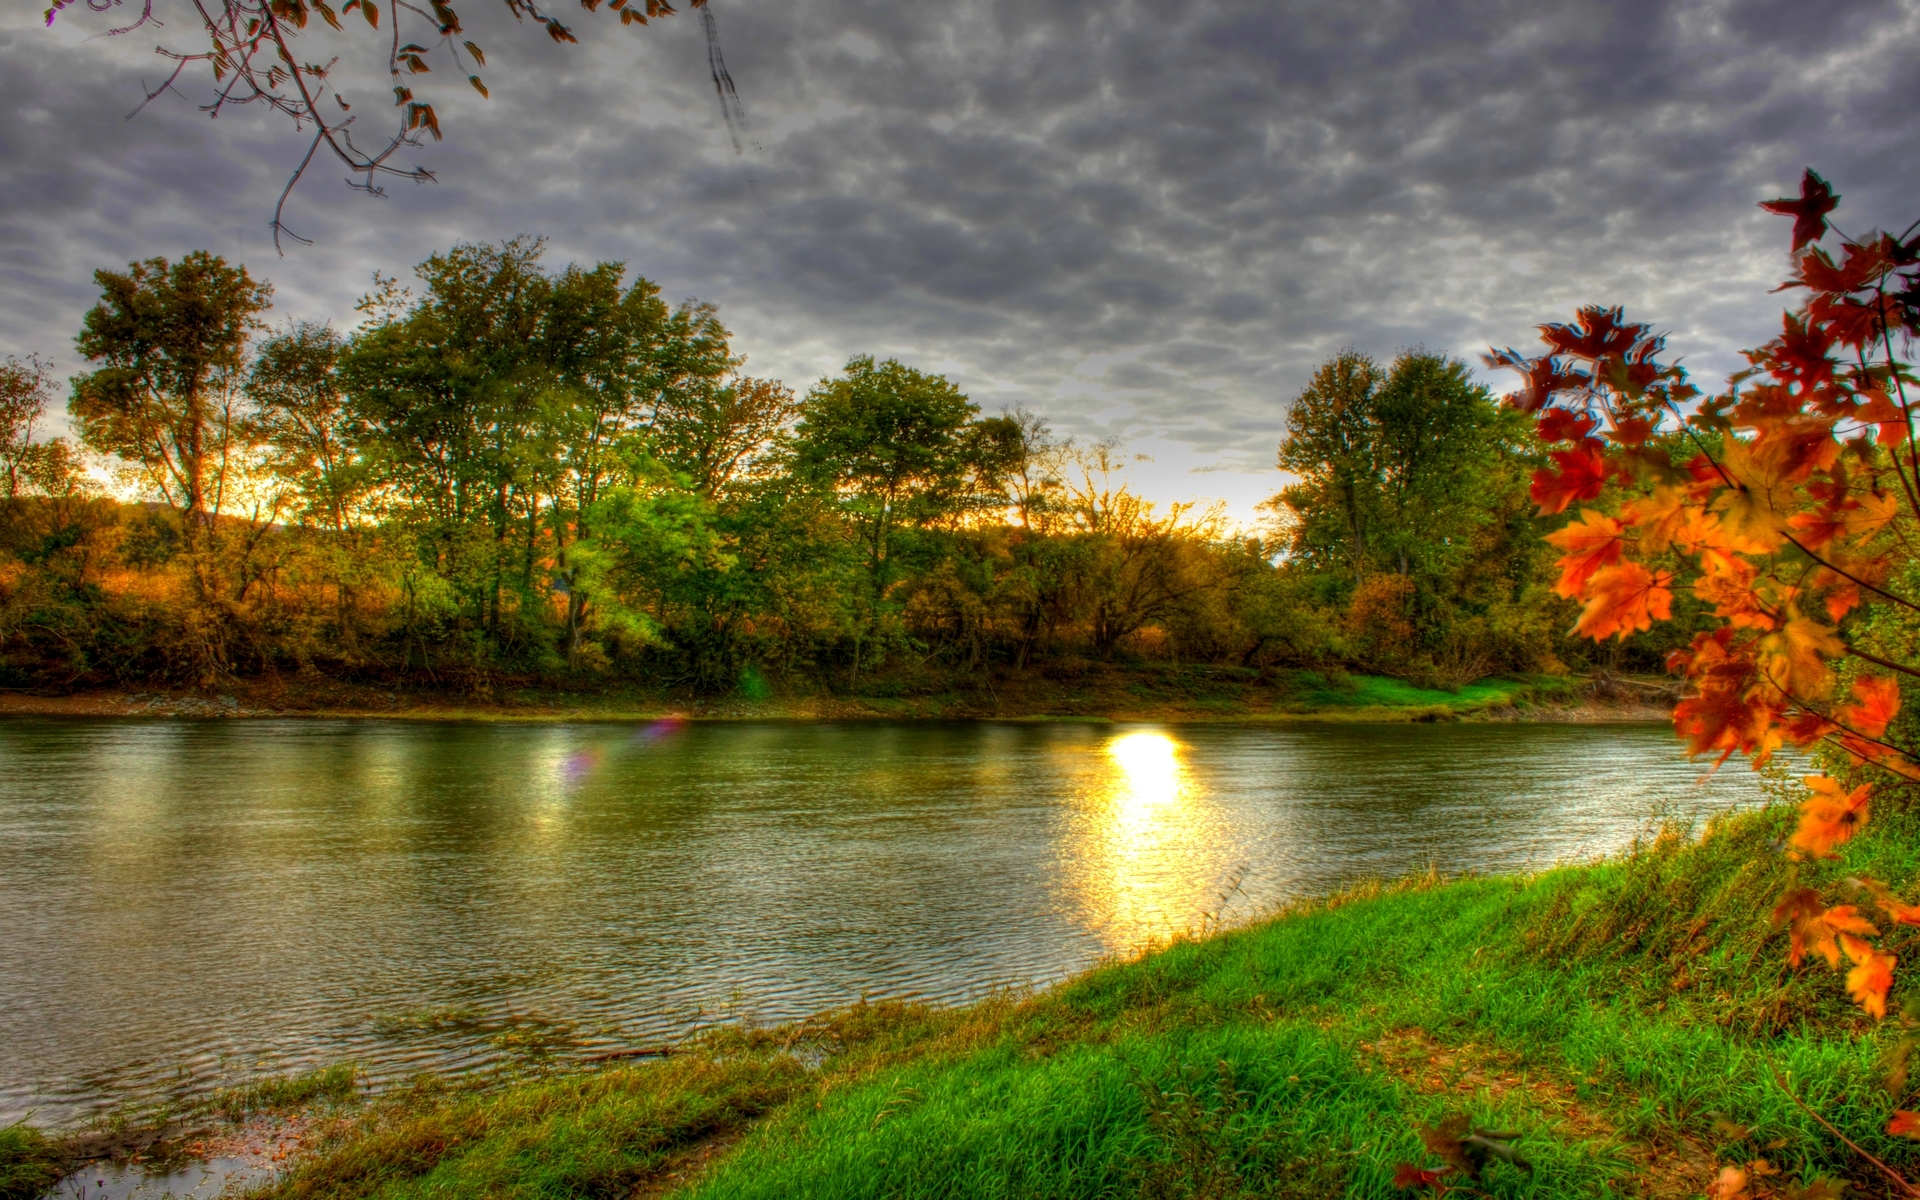 Full Screen Desktop Fall Leaves Wallpaper Autumn River Hd Wallpaper Pixelstalk Net